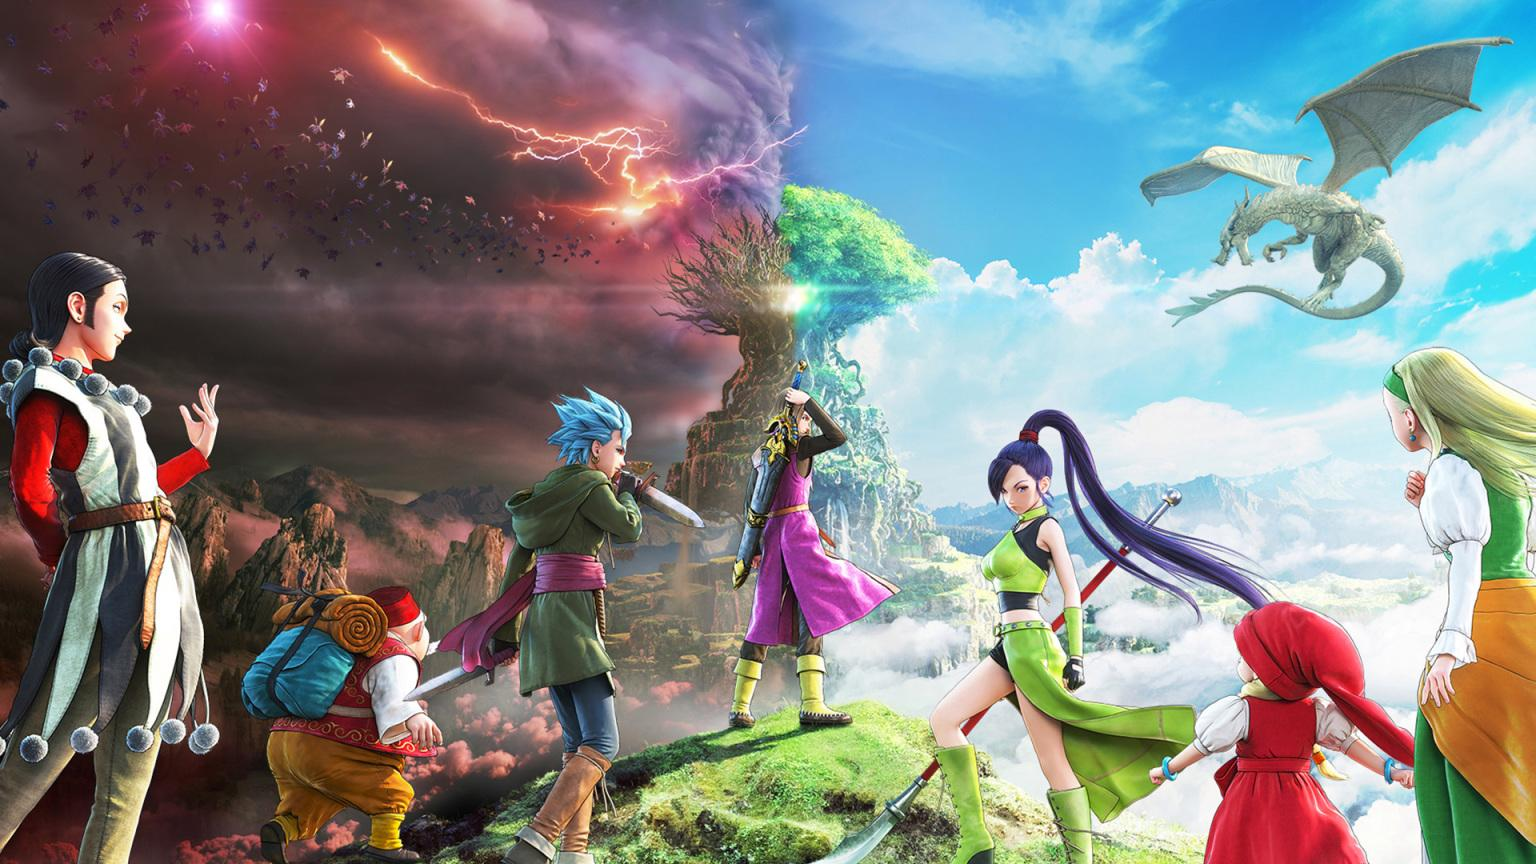 Dragon Quest XI S confirmed for Xbox consoles, releases in December